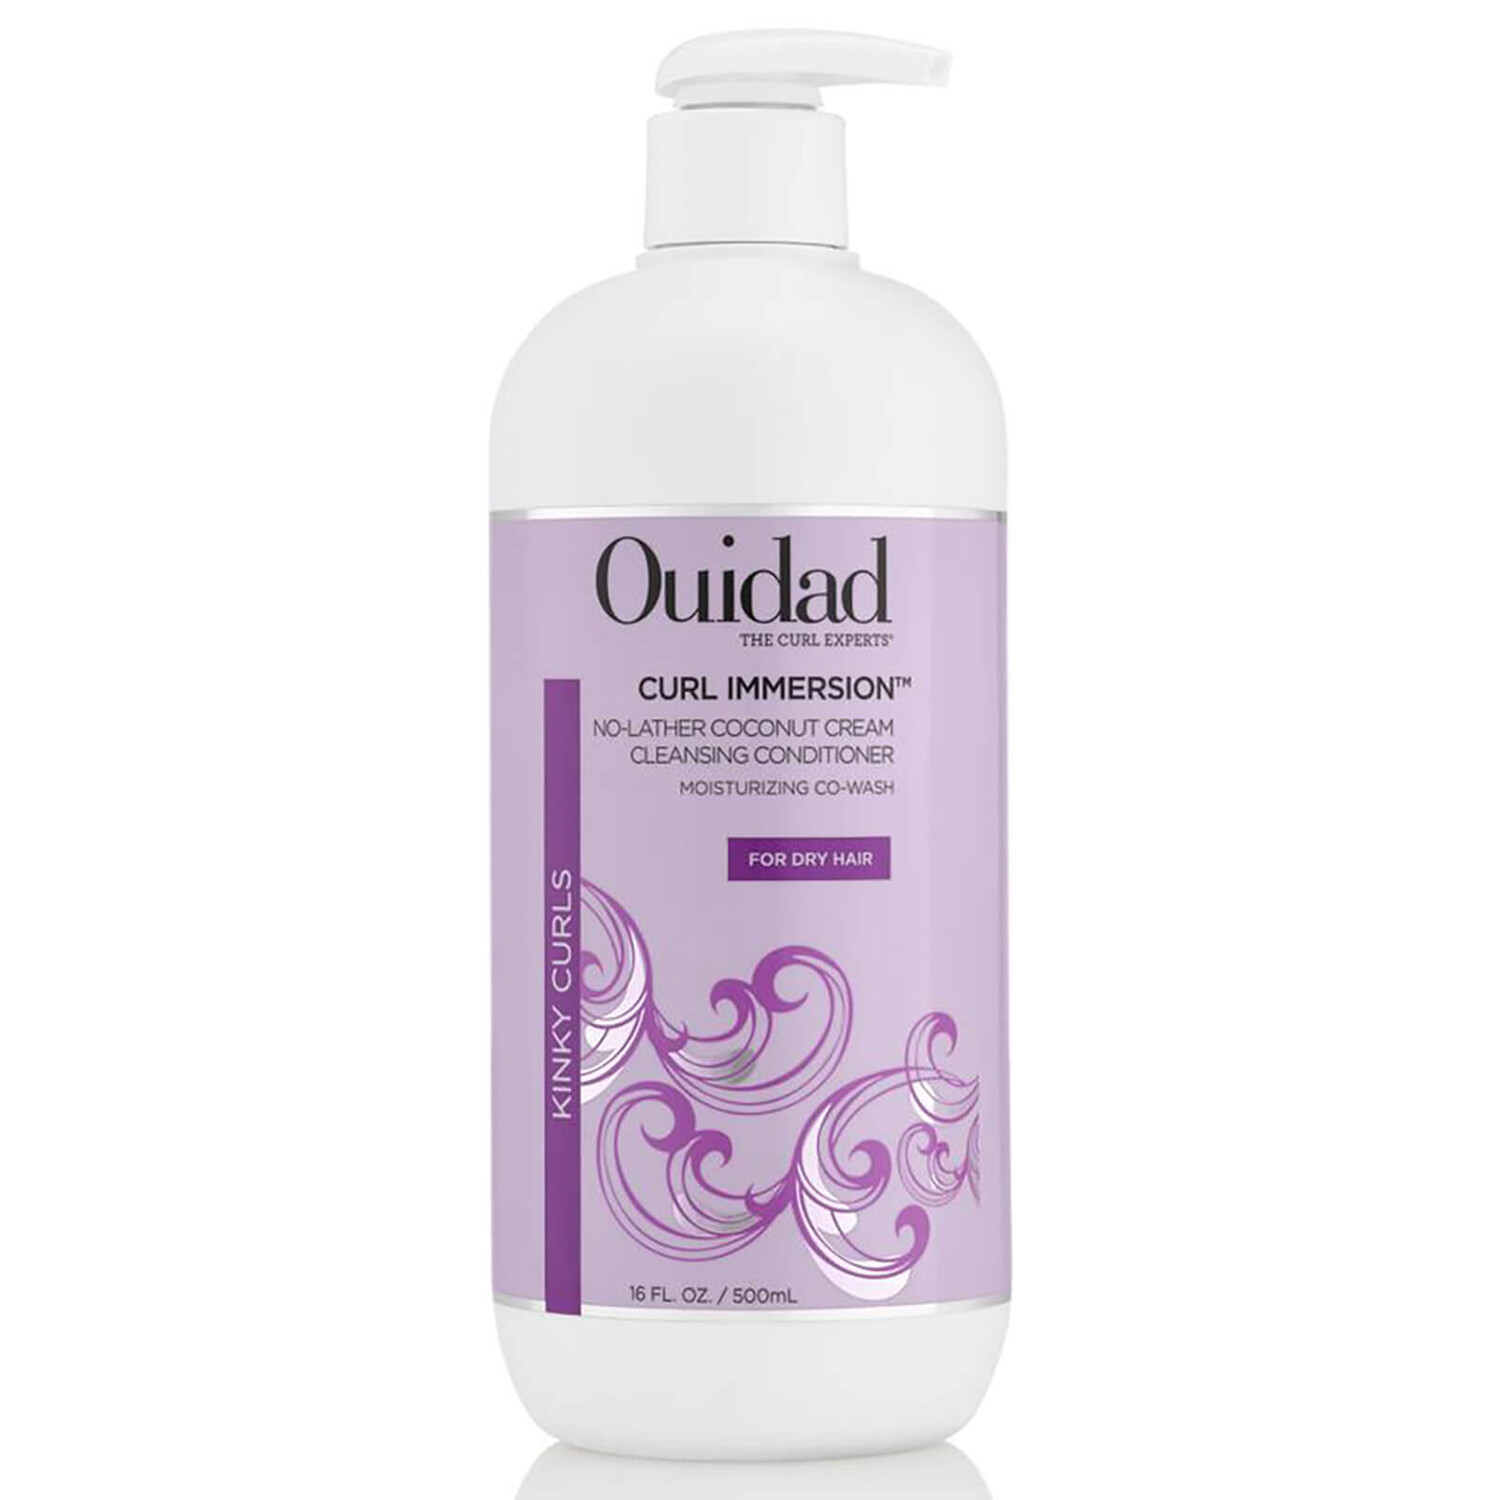 Ouidad Curl Immersion No Lather Coconut Cream Cleansing Conditioner